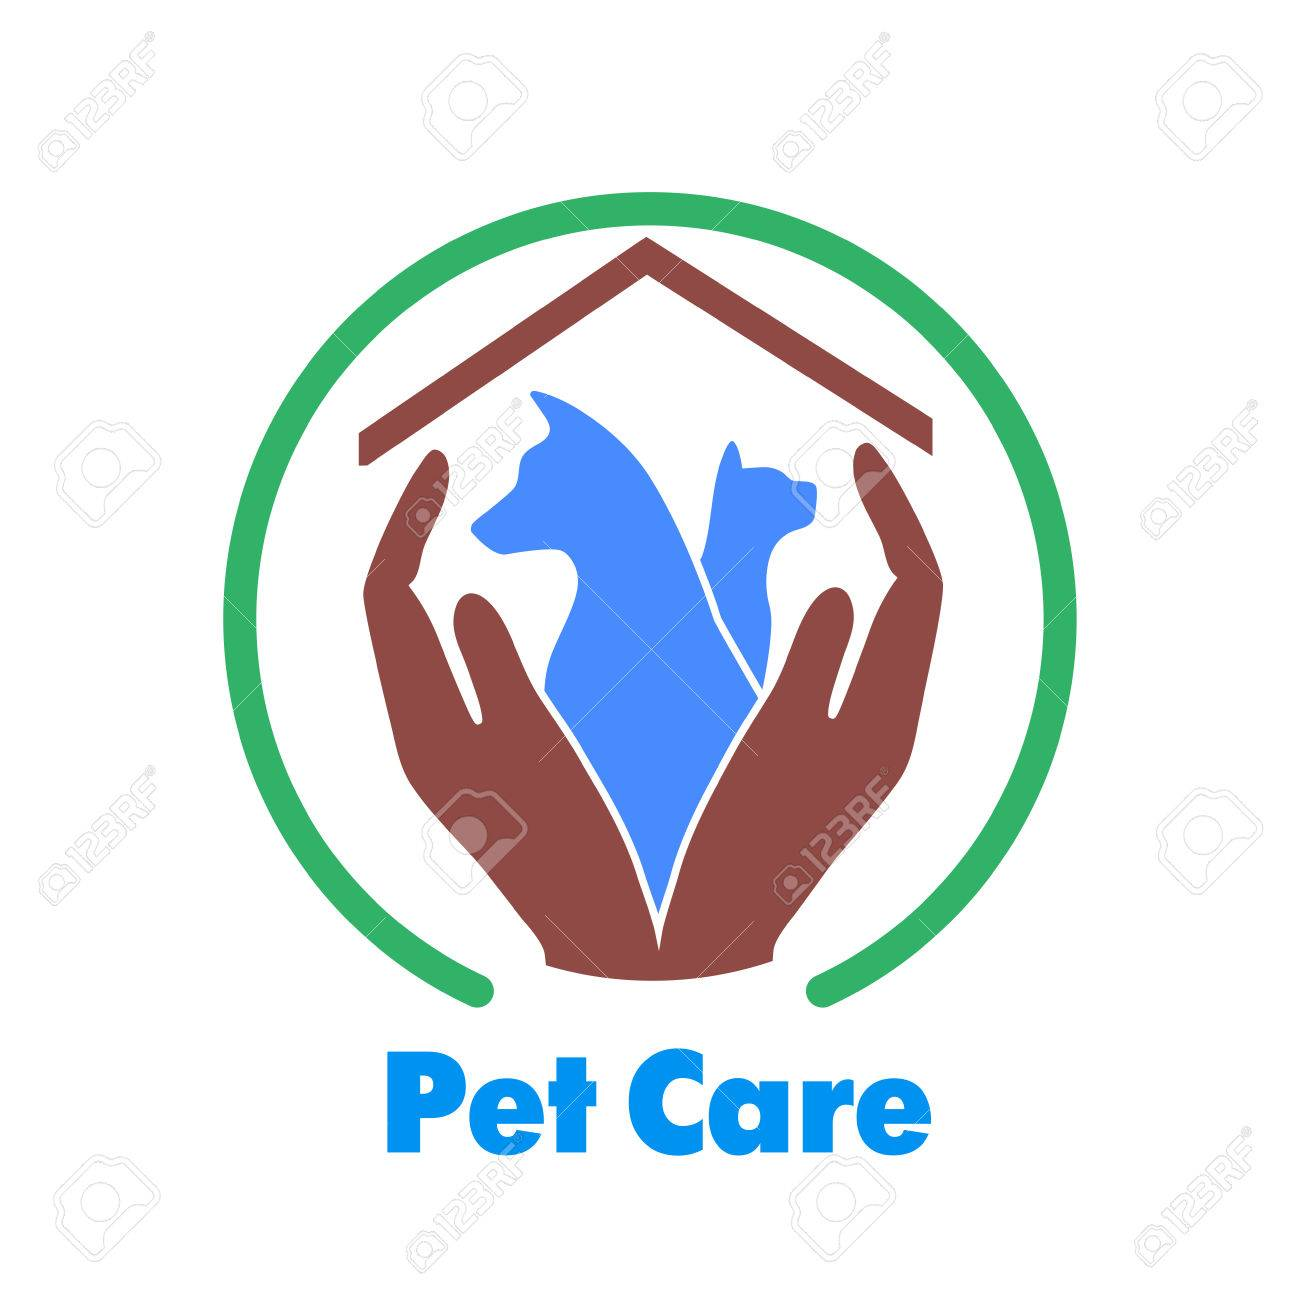 Logo Care Of Animals Symbol Of Protection Of Vagrant Animals